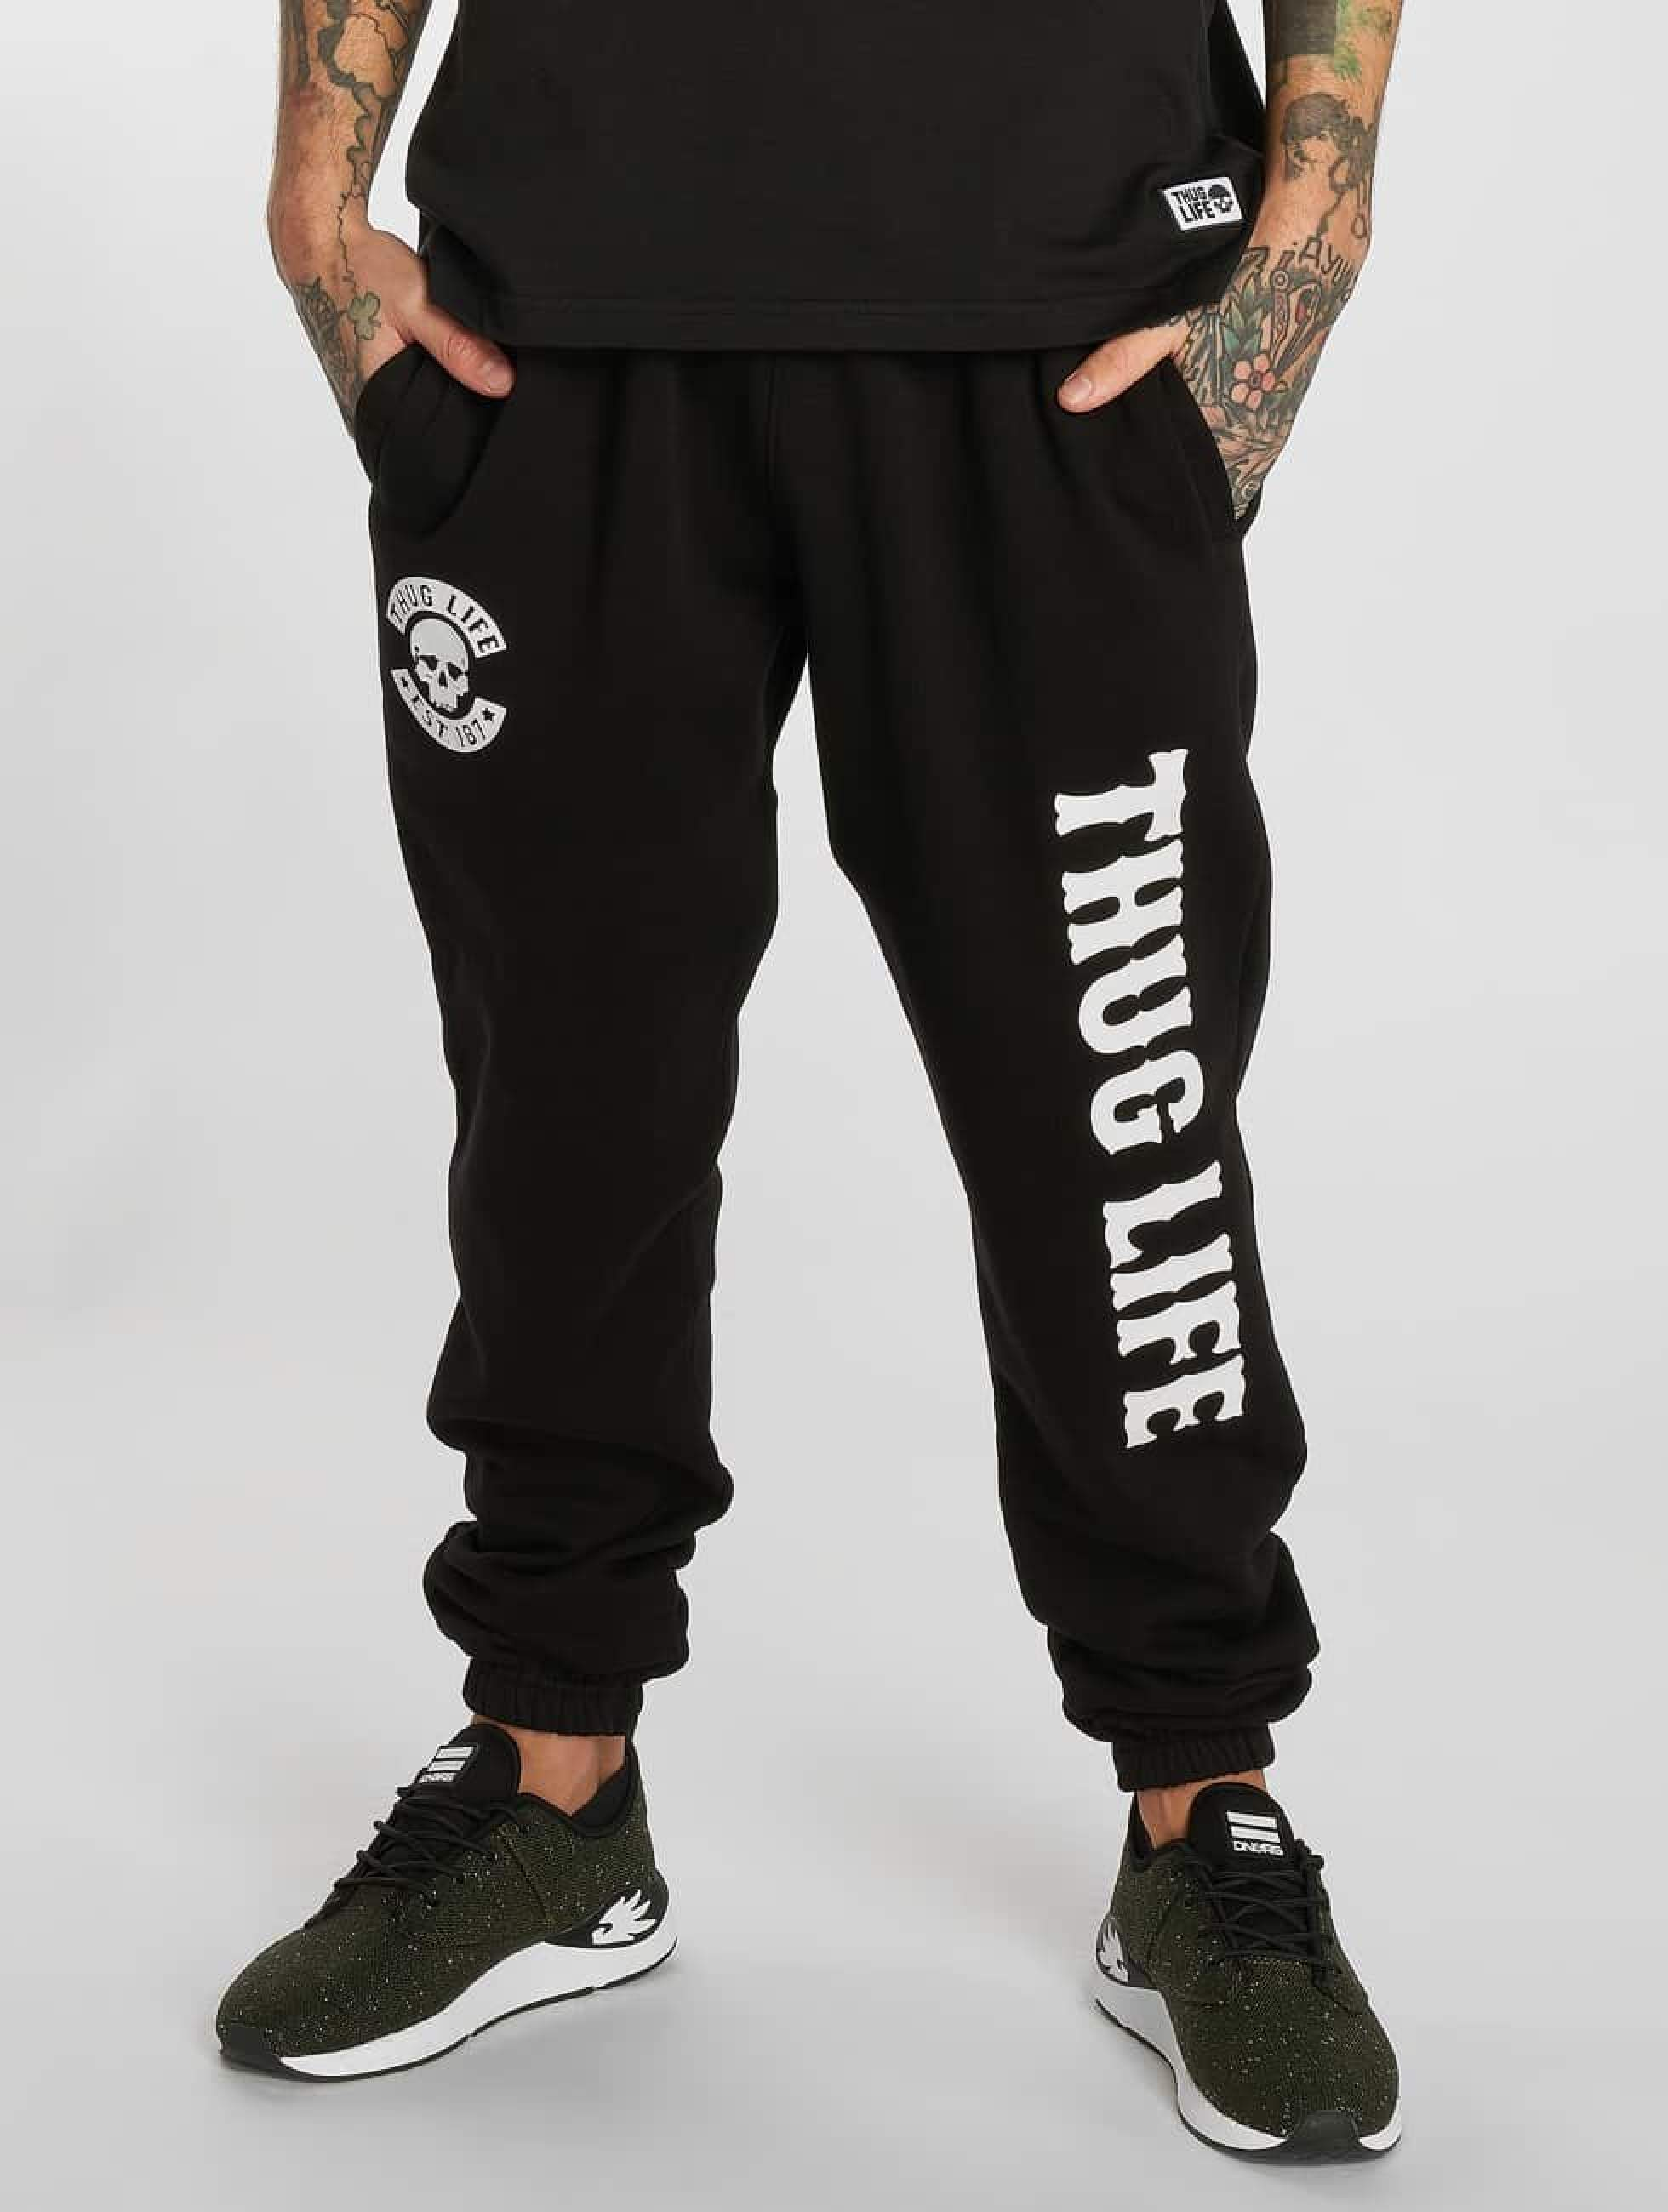 Thug Life / Sweat Pant TLSP124 in black 2XL